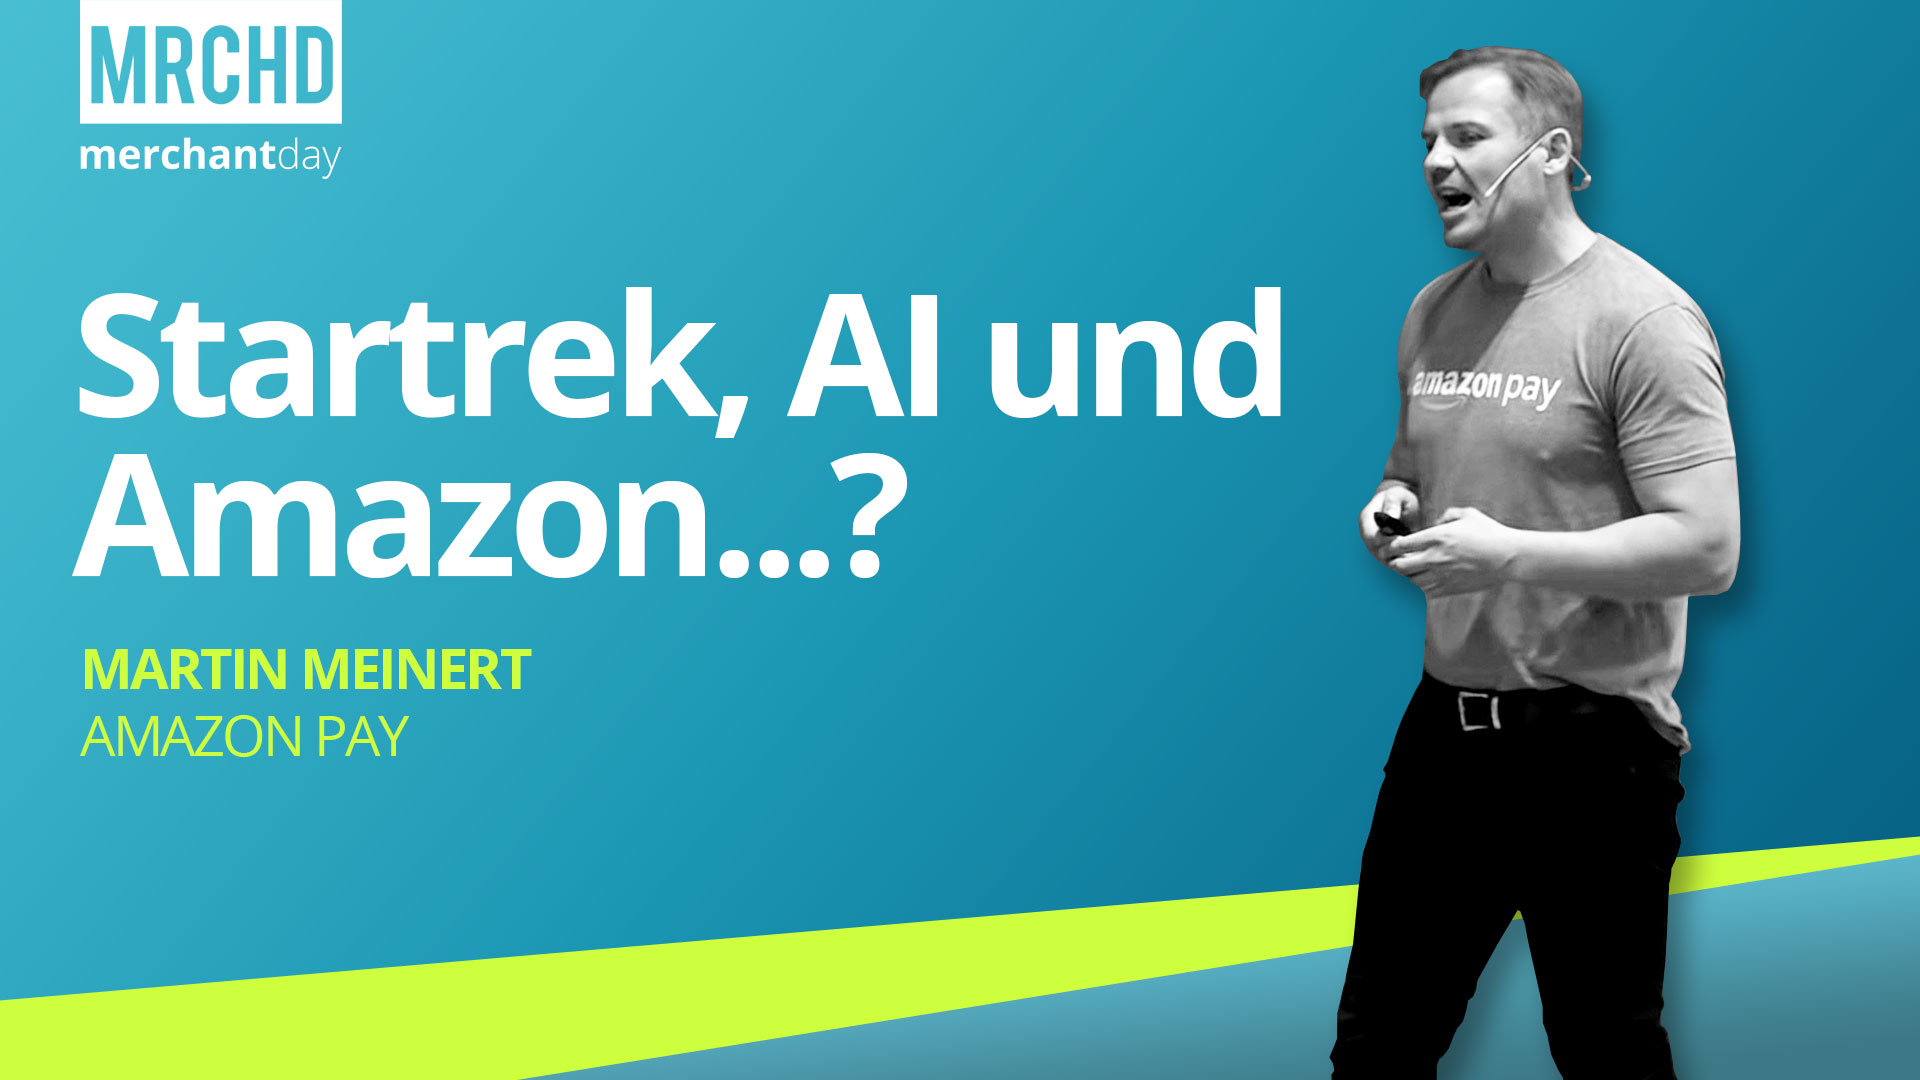 merchantday-Konferenz-2019-Vortrag-Martin-Meinert-Amazon-Pay